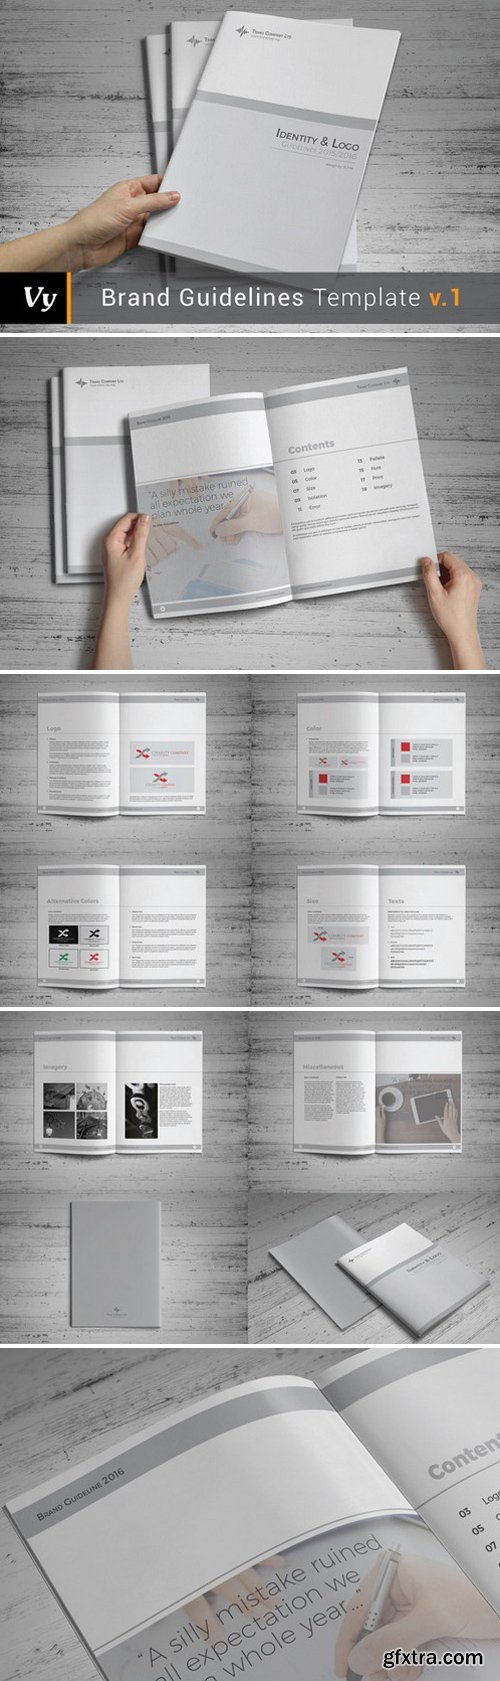 CM - Brand Guidelines Template 331992